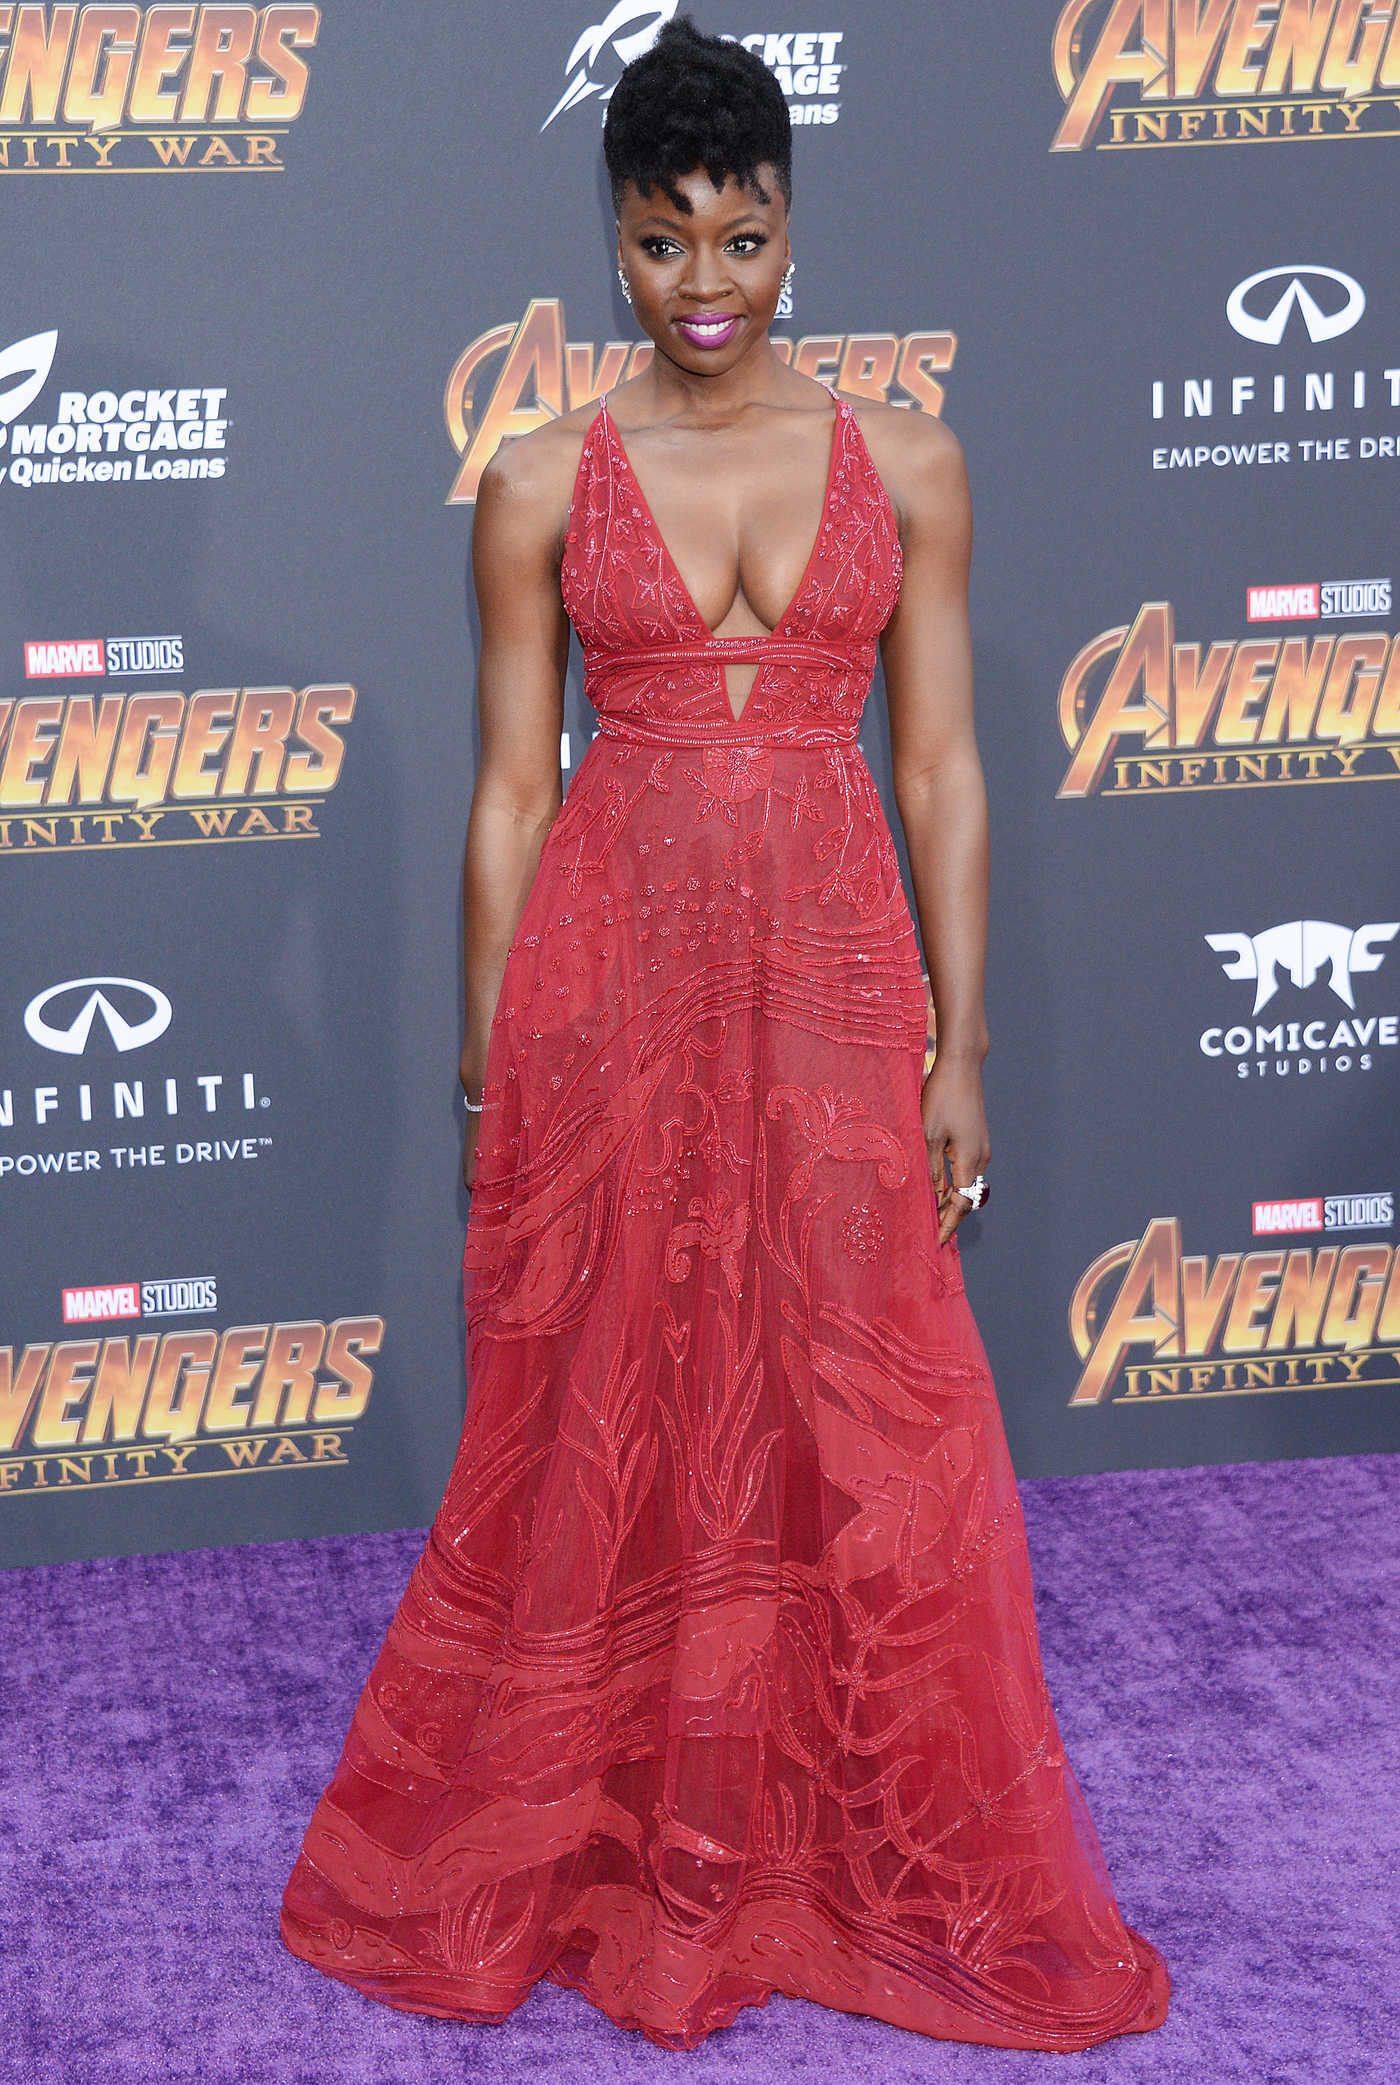 Danai Gurira at Avengers: Infinity War Premiere in Los Angeles 04/23/2018